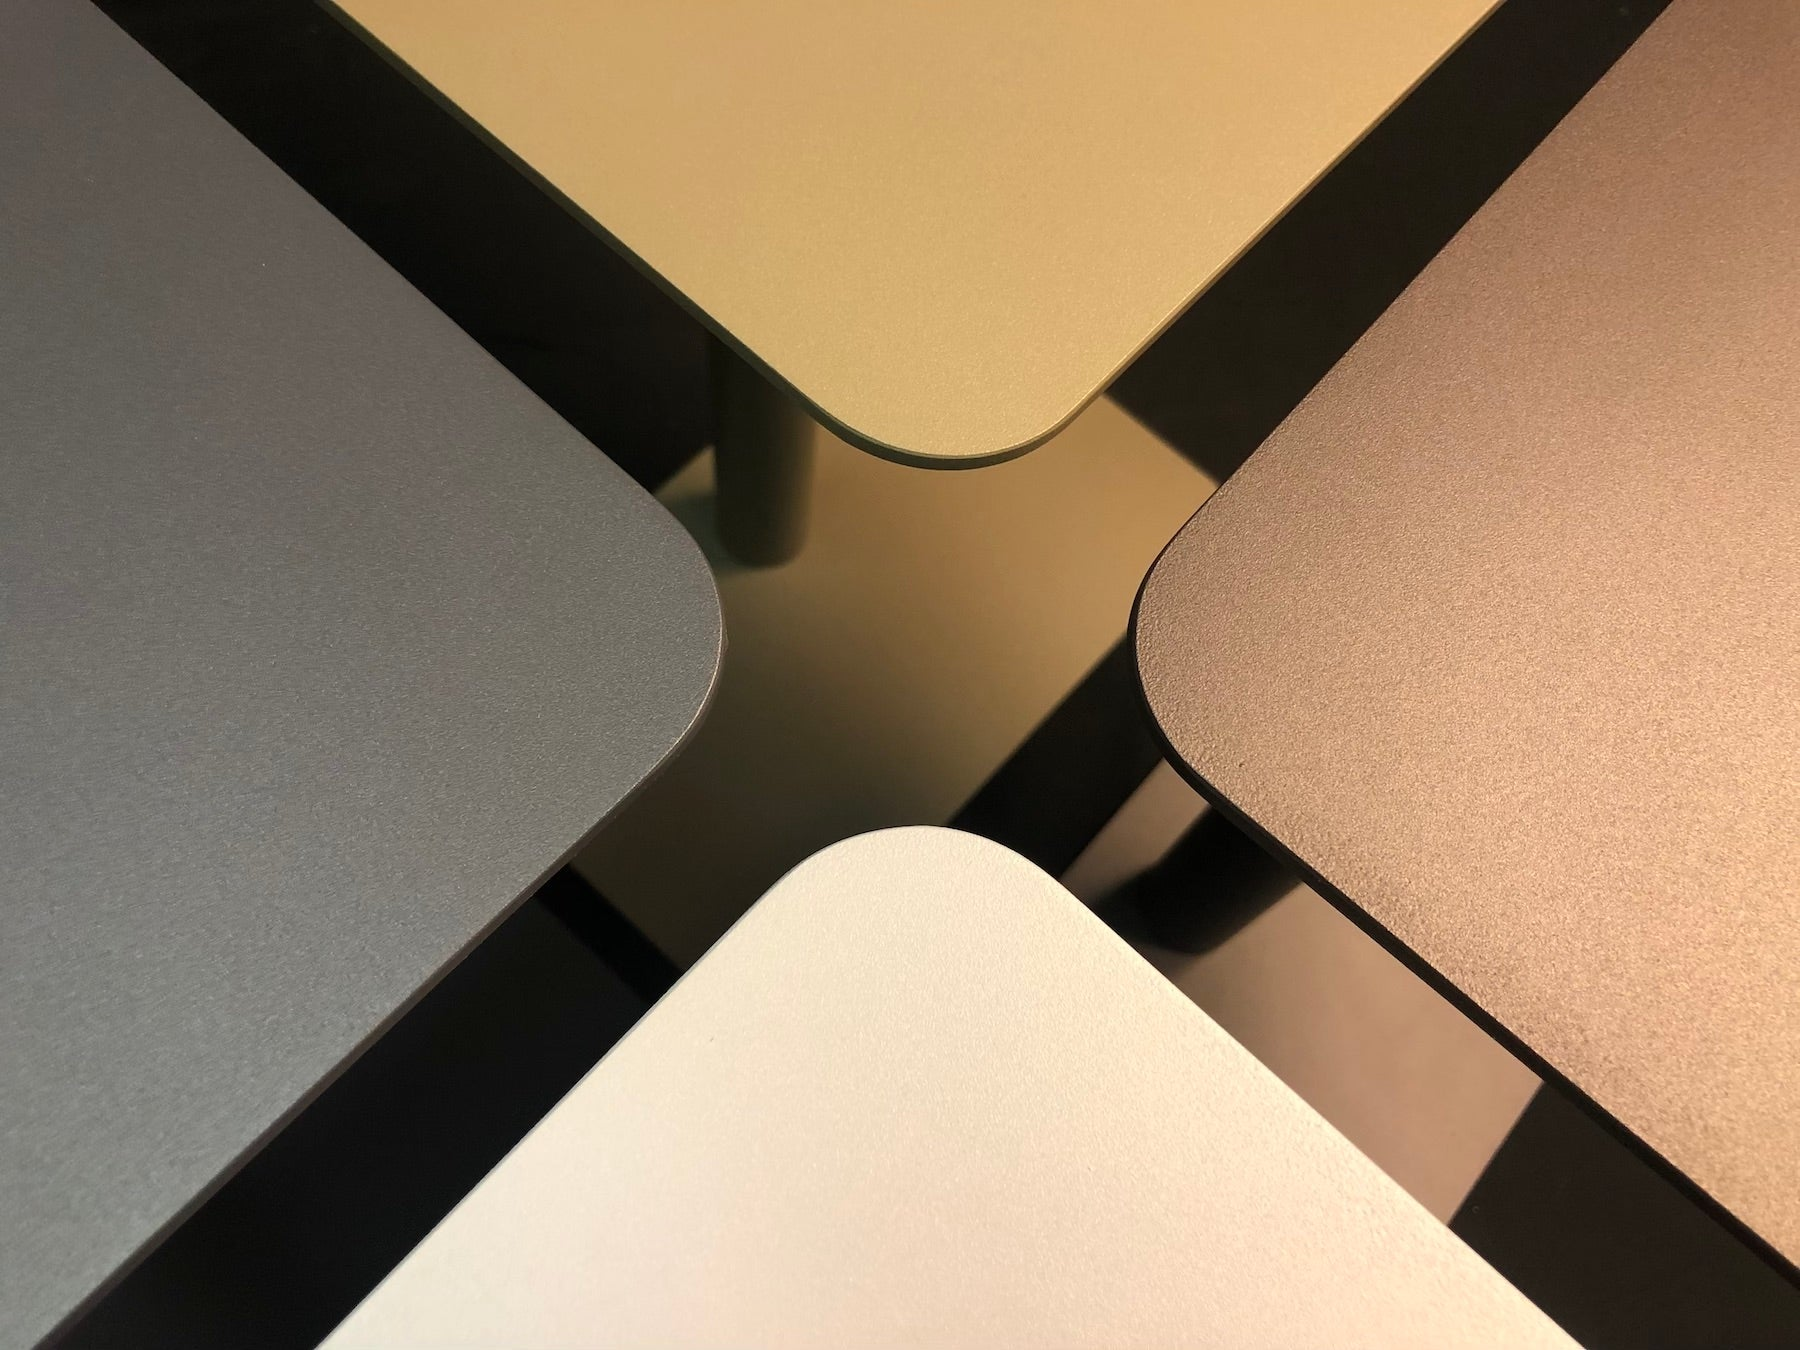 Height Adjustable Desk Sopiva Collection has got new awesome colors!